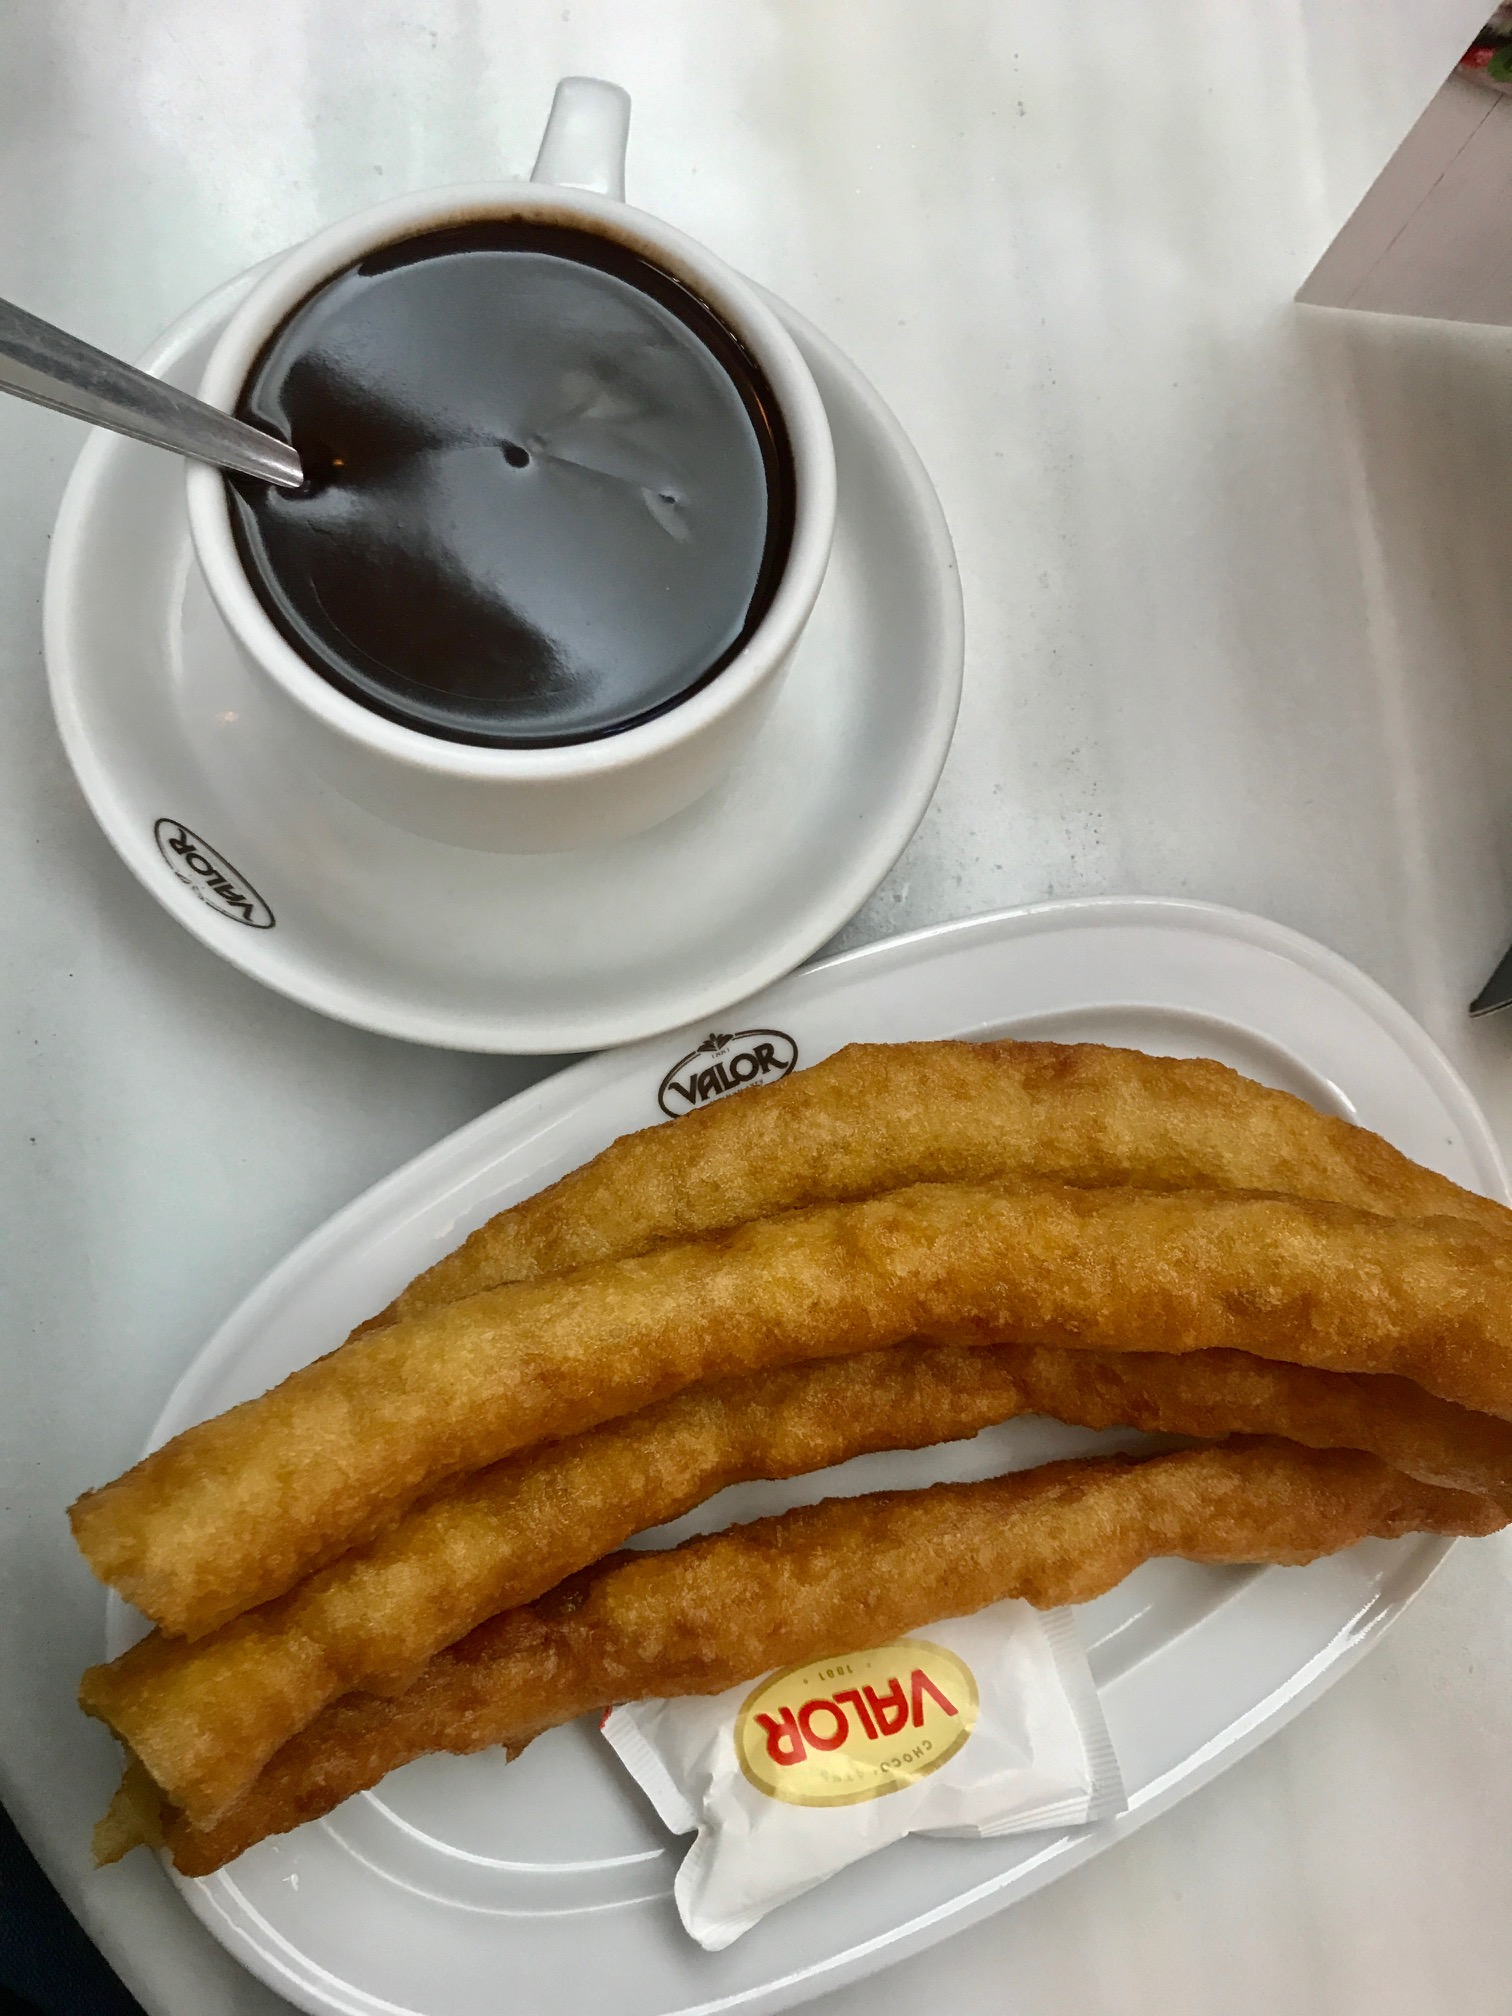 Best Restaurants in Barcelona: Churros at Valor